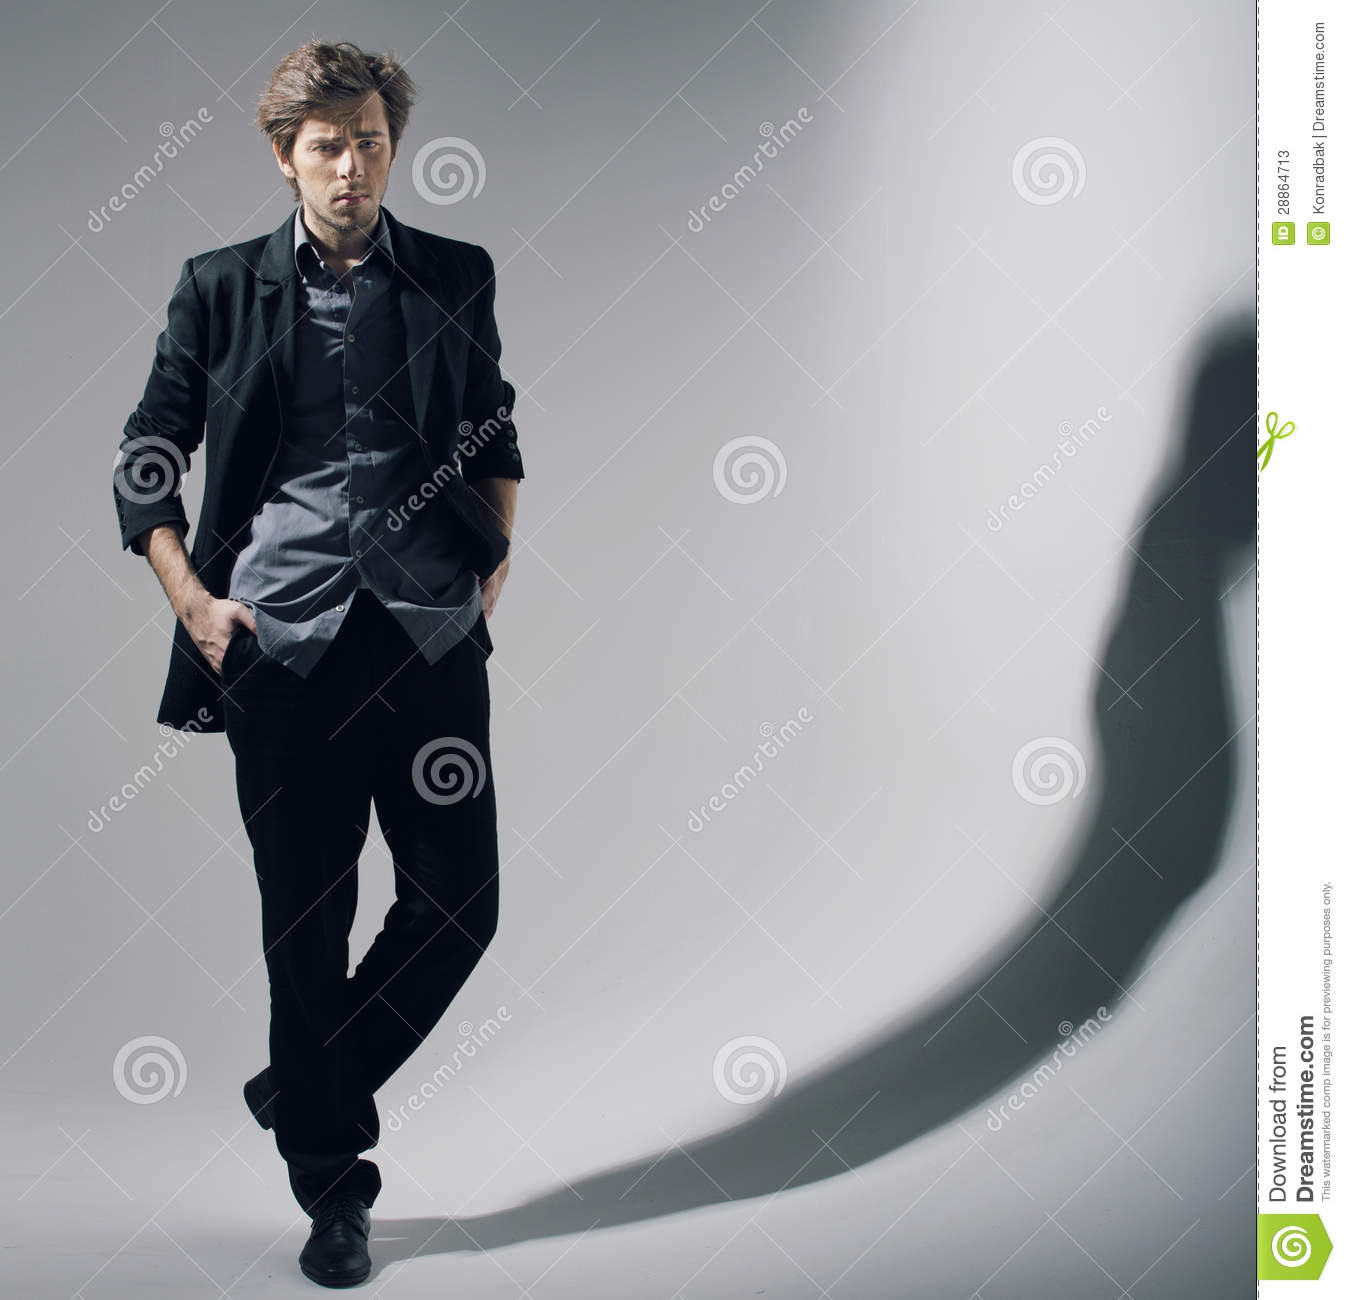 Self Confident Bussiensman In Natural Pose Stock Image